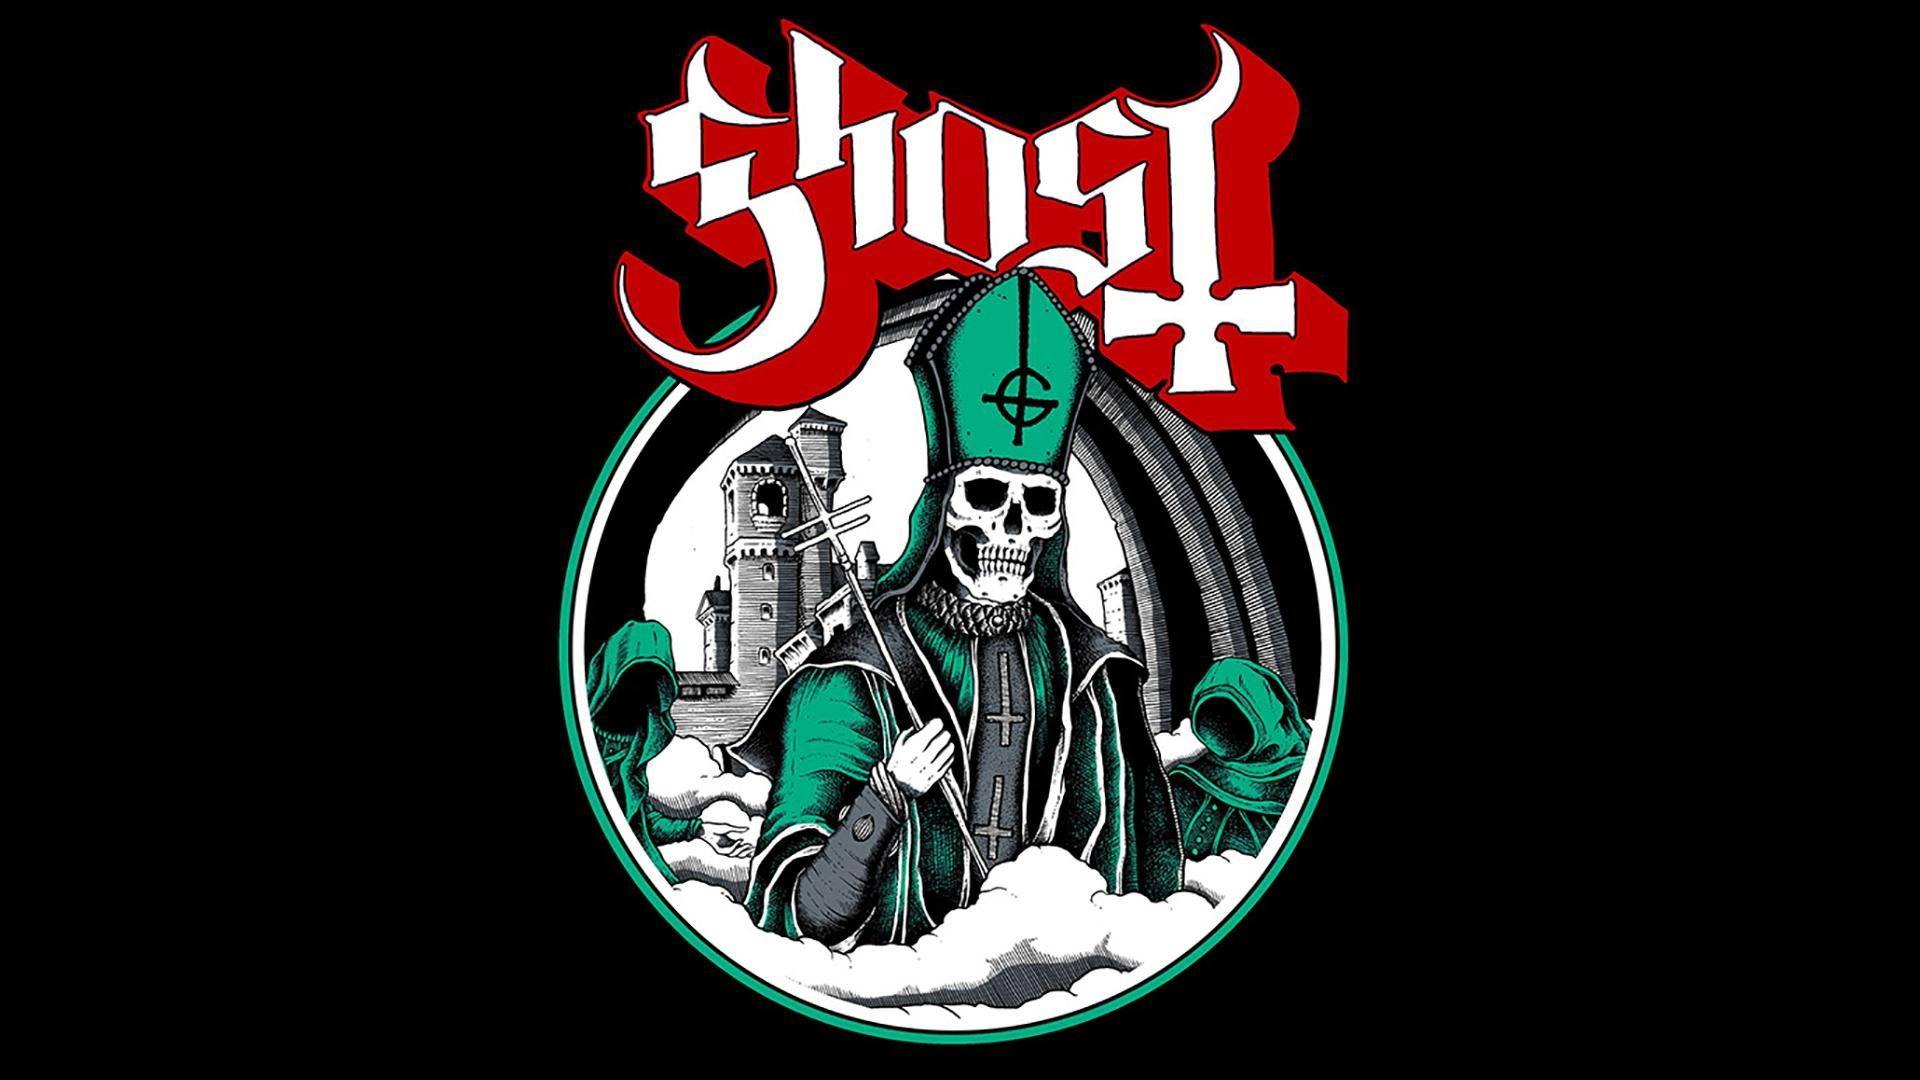 Ghost Band Wallpapers Top Free Ghost Band Backgrounds